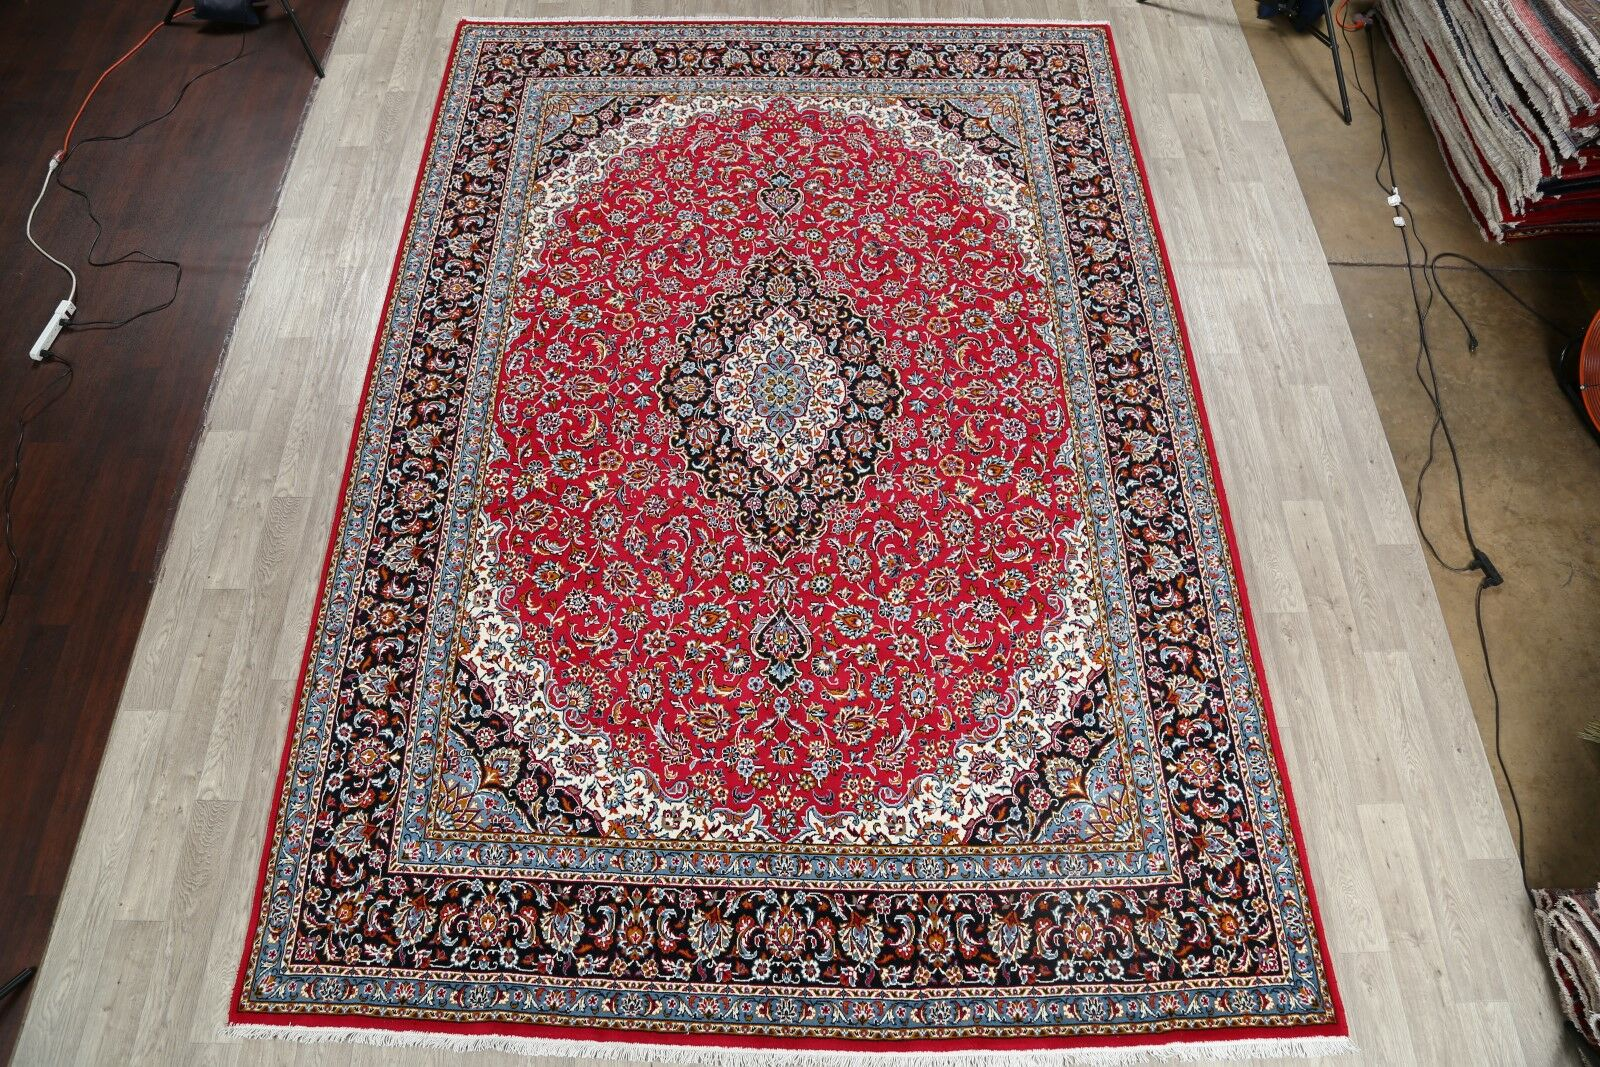 Eliason Soft Plush Floral Kashmar Persian Red/Beige/Black Area Rug